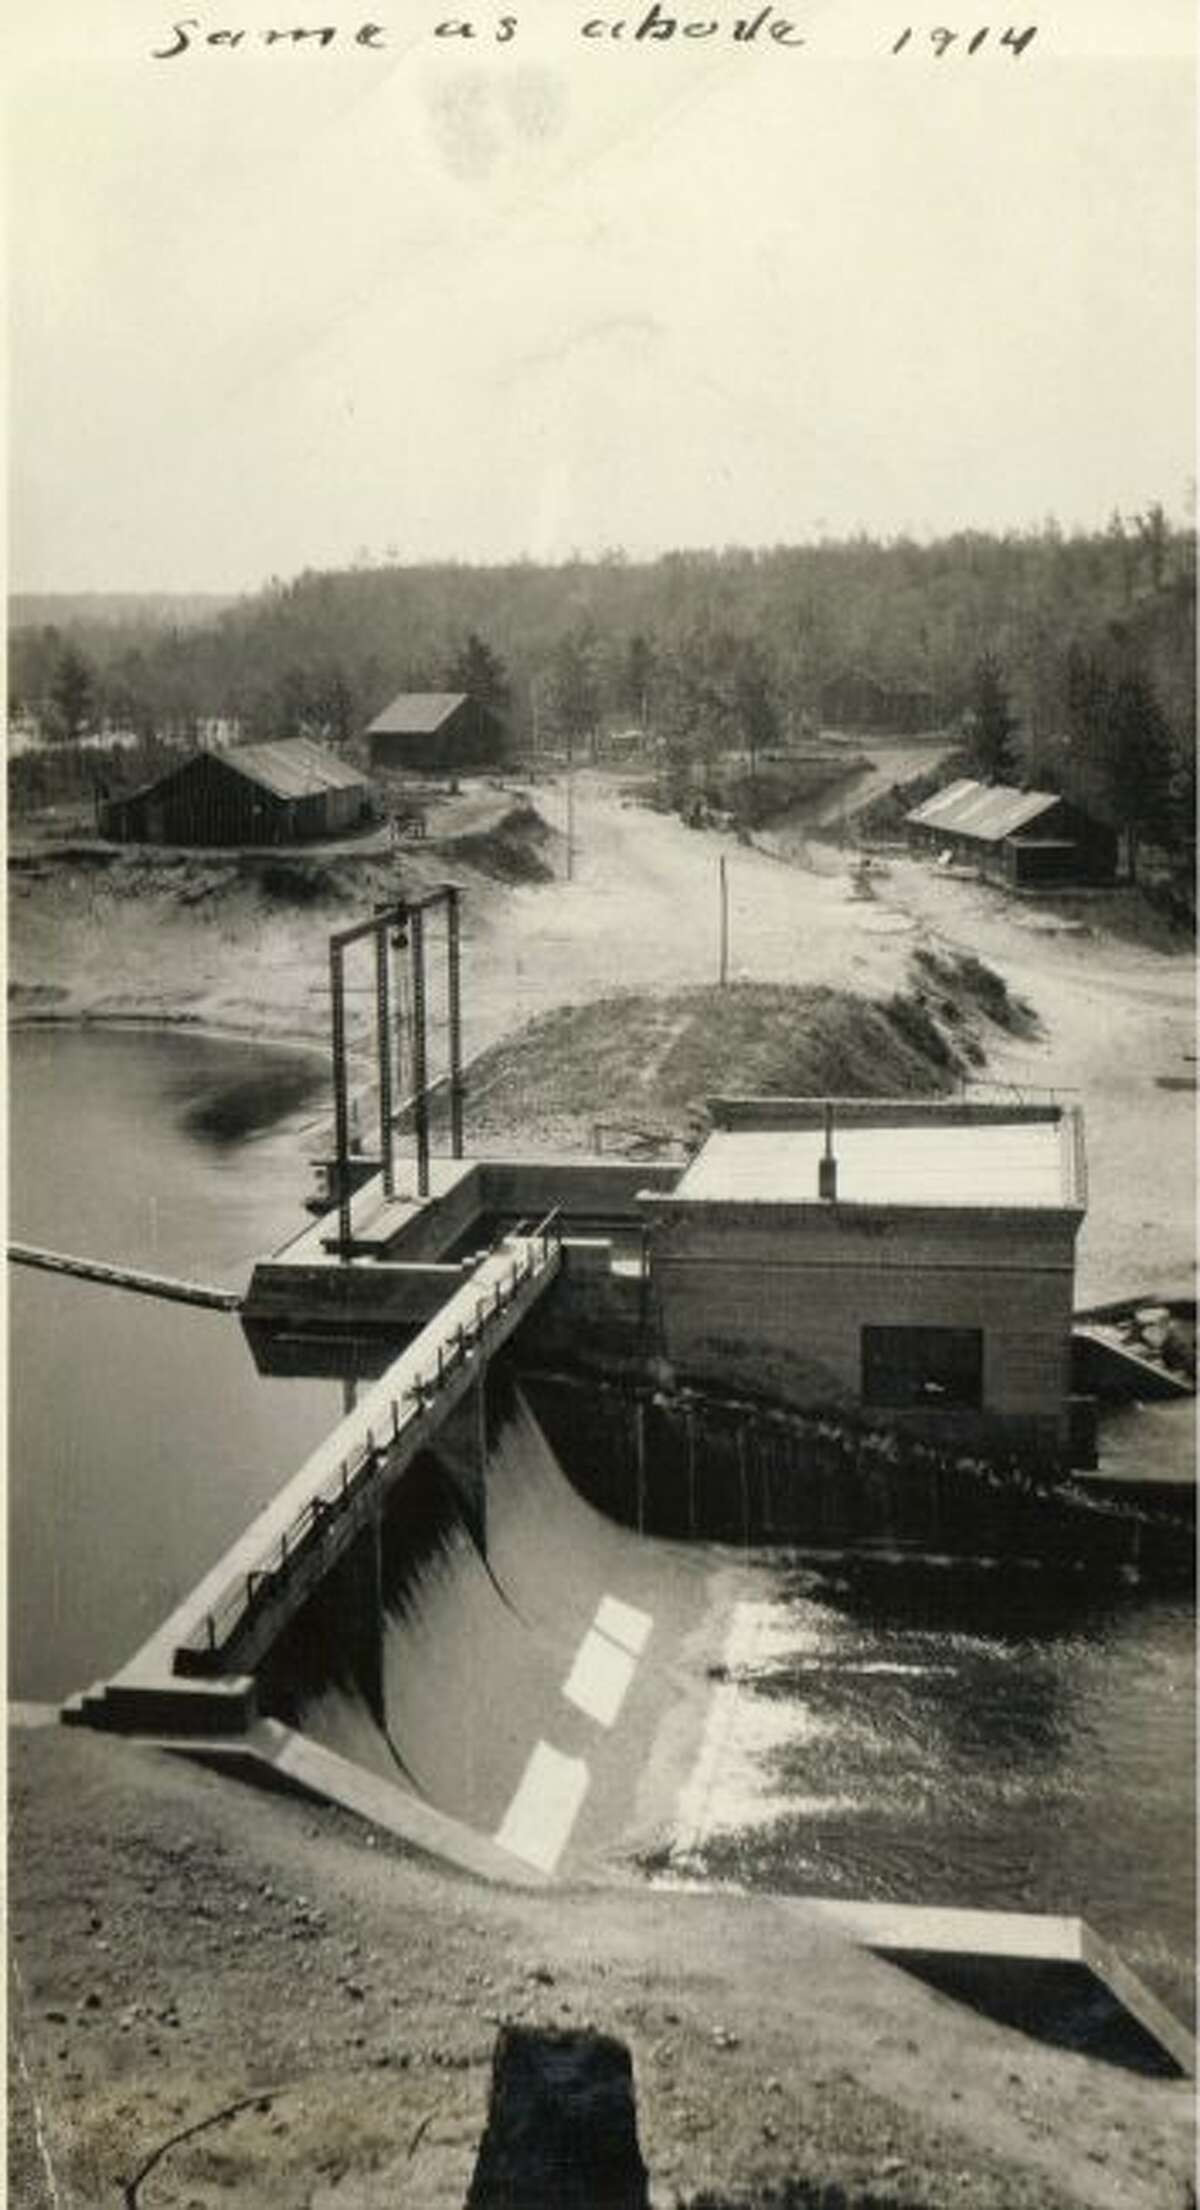 The Stronach Dam is shown in this photograph from 1914.